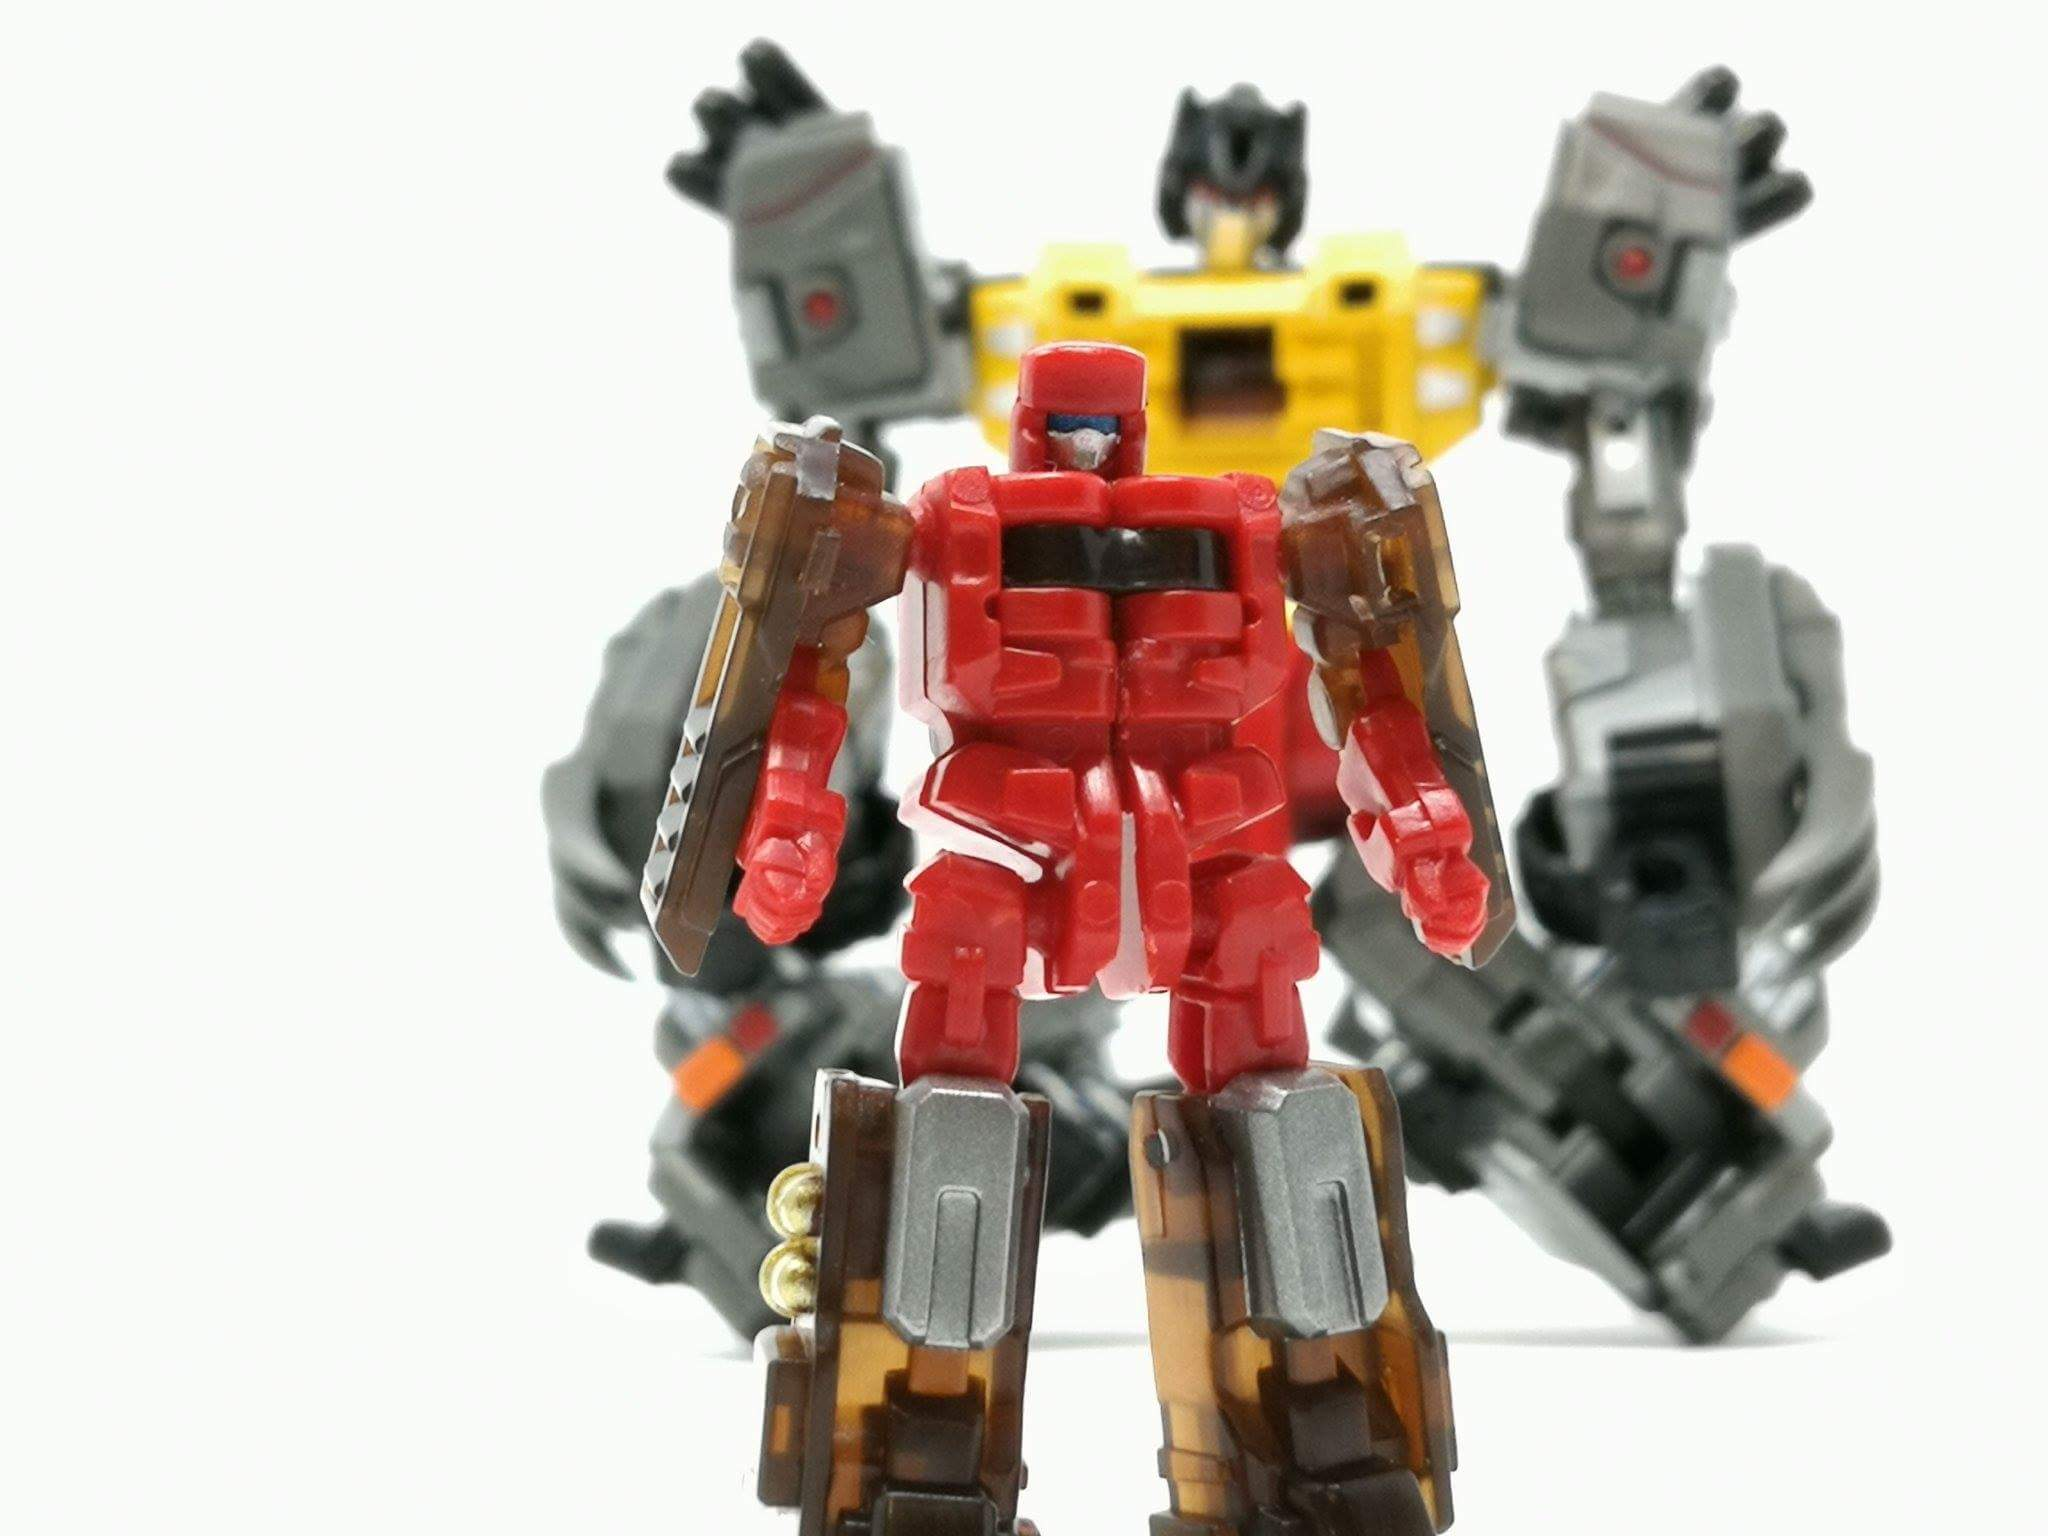 [FansProject] Produit Tiers - Jouets LER (Lost Exo Realm) - aka Dinobots - Page 3 6zqq8kCt_o